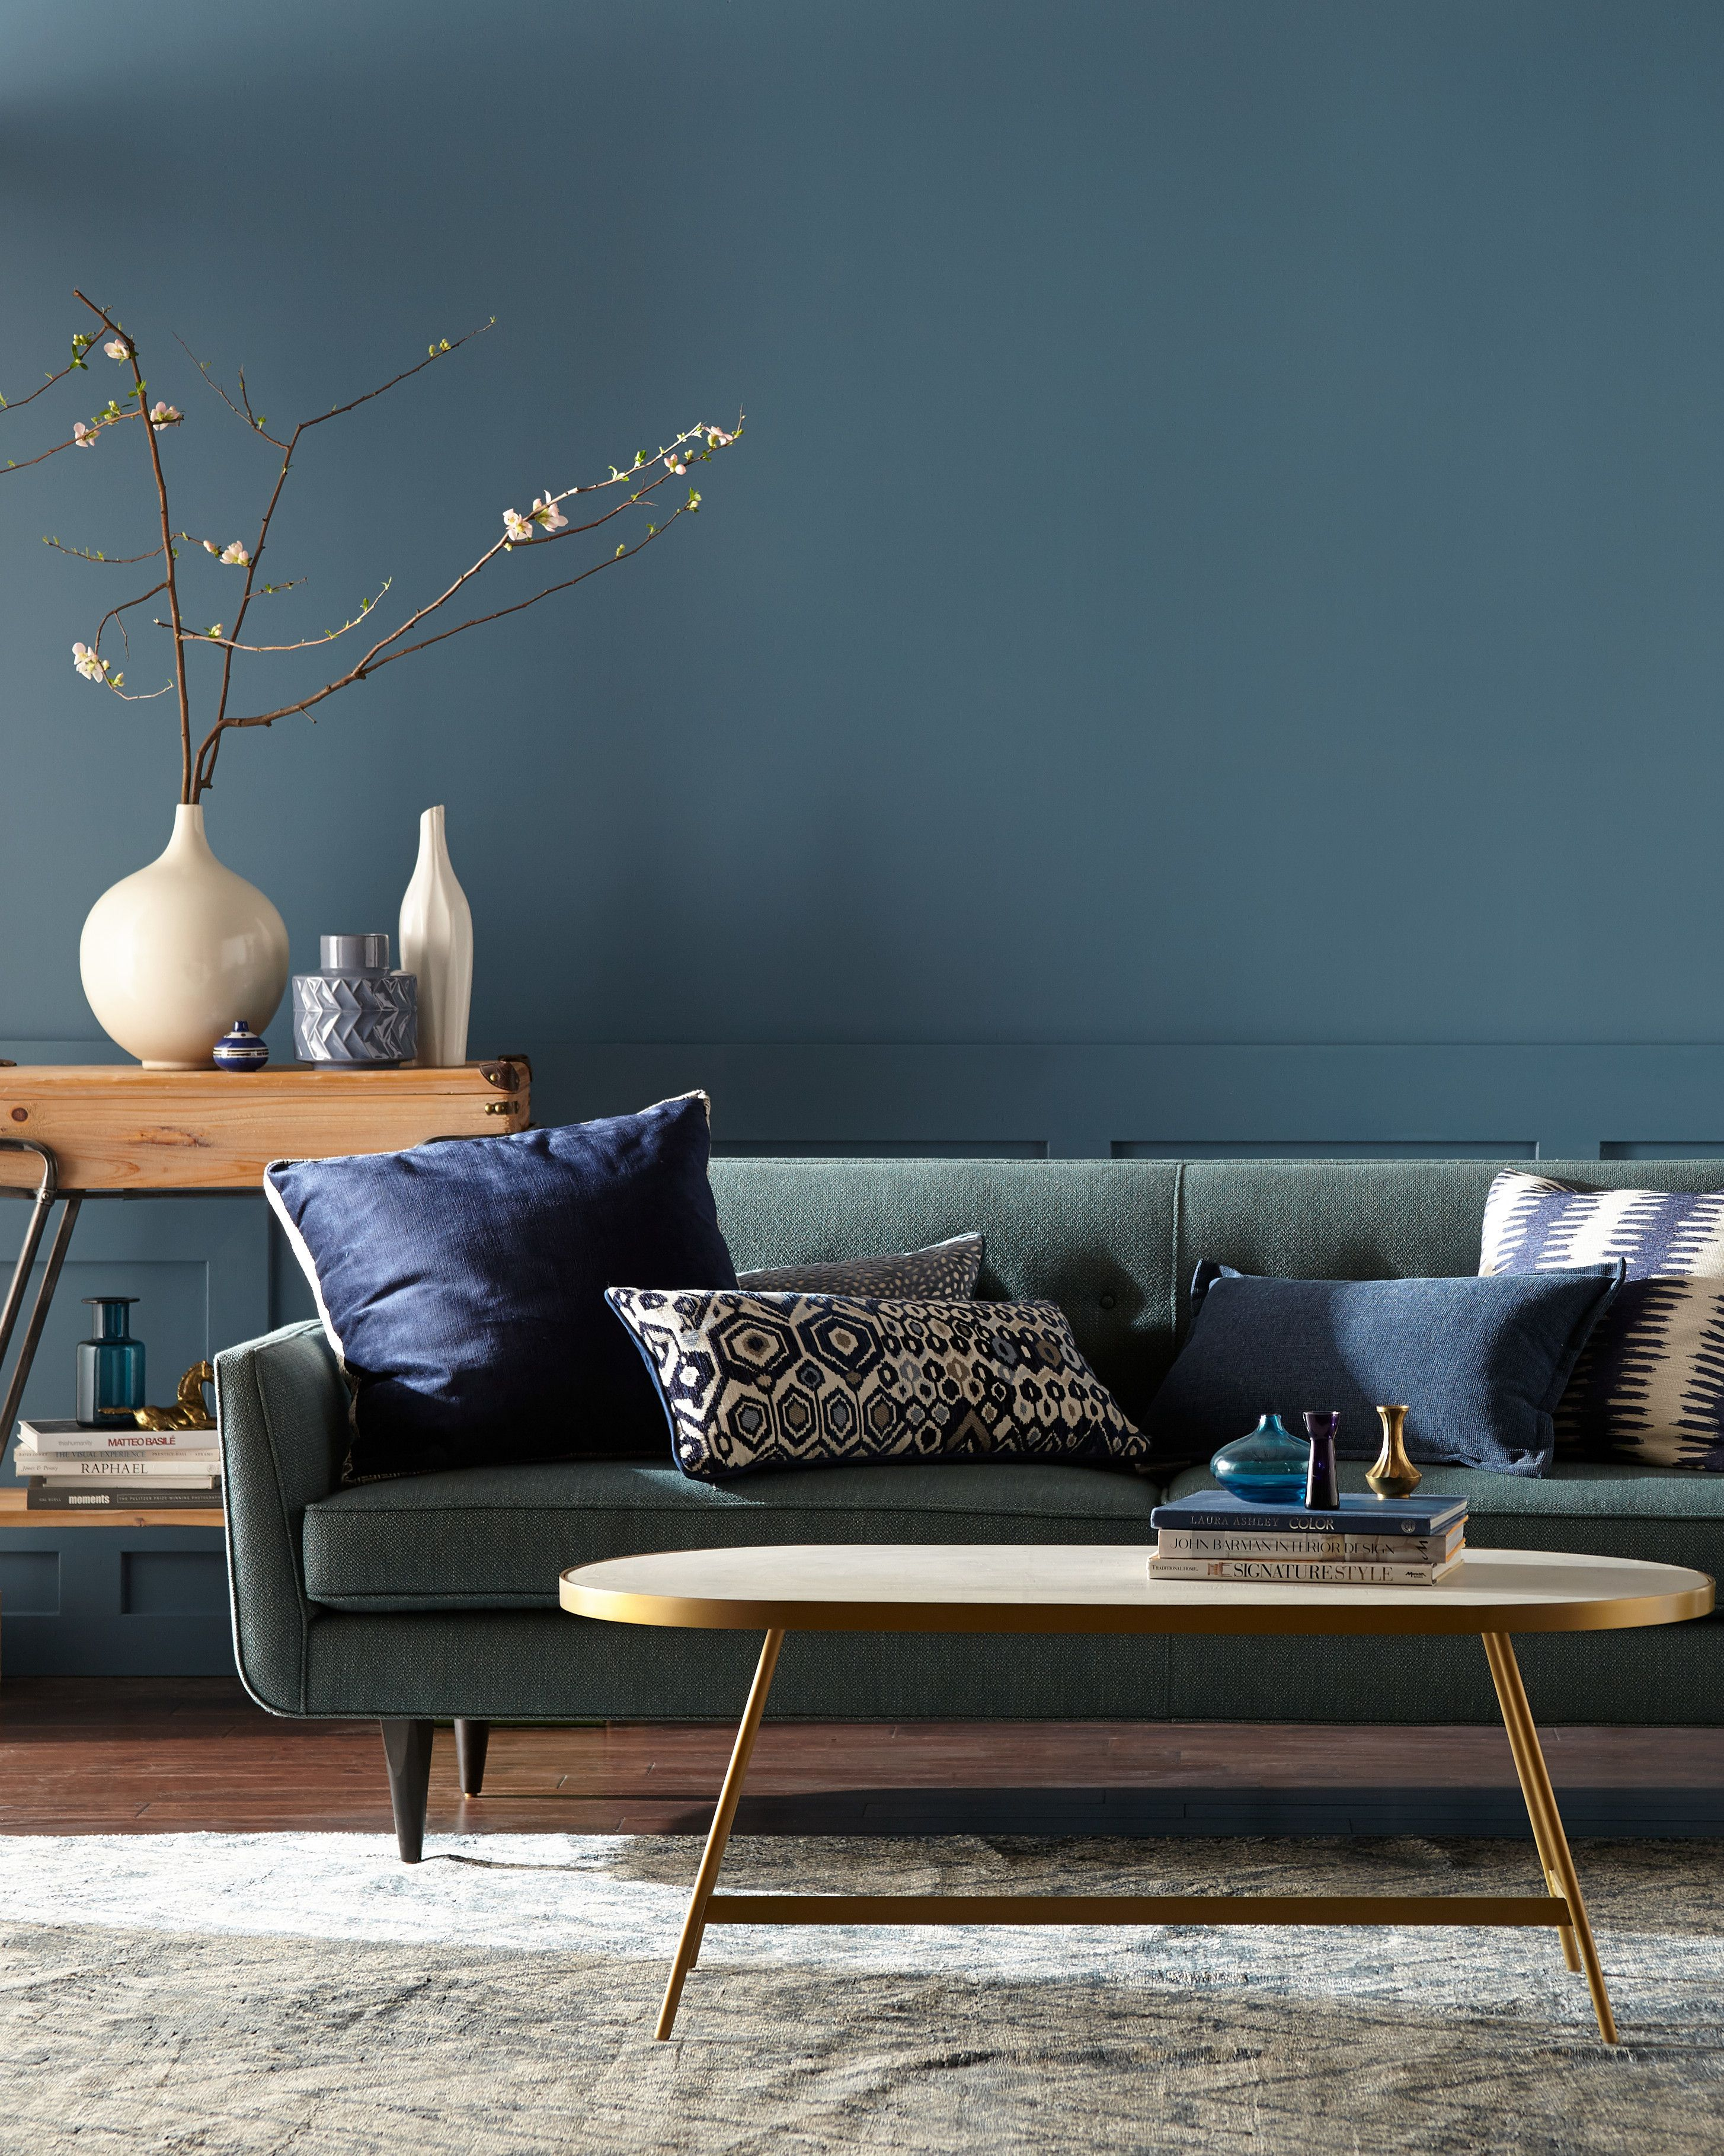 These Are The Most Popular Living Room Paint Colors For 2019 Popular Living Room Colors Blue Living Room Color Living Room Color Schemes #new #color #for #living #room